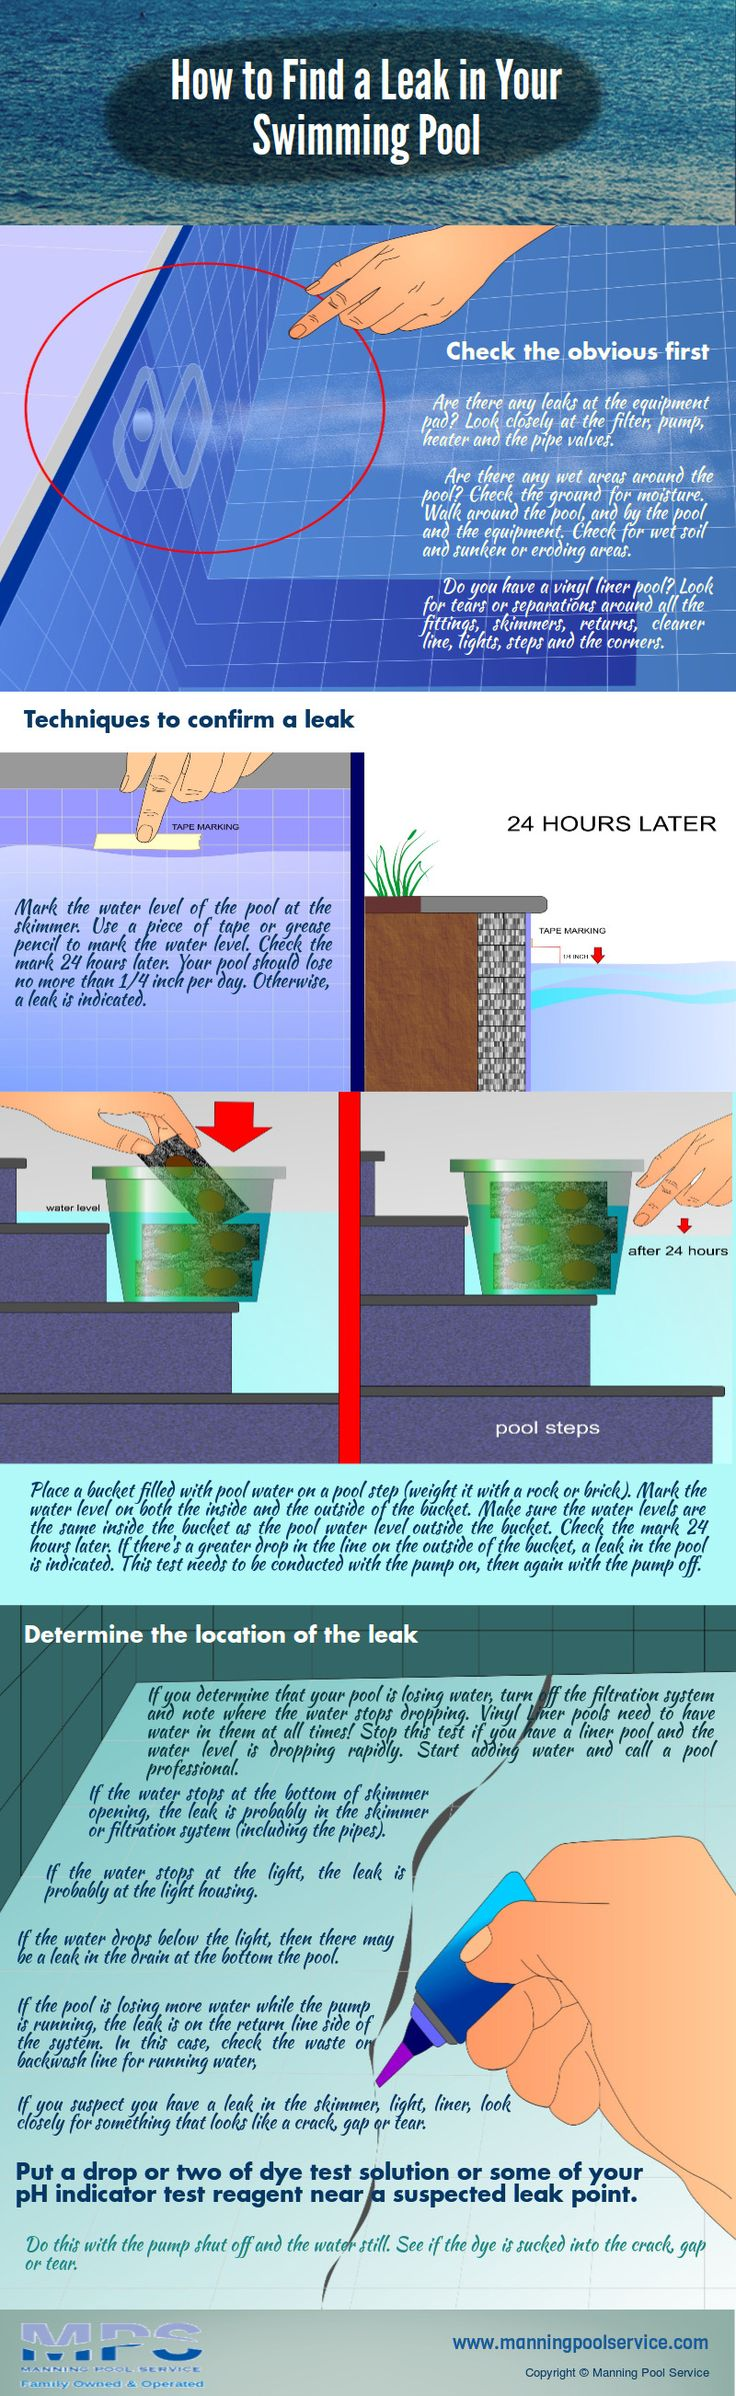 25 best ideas about pool heater on pinterest diy solar pool heater diy pool heater and solar How to fix a swimming pool leak